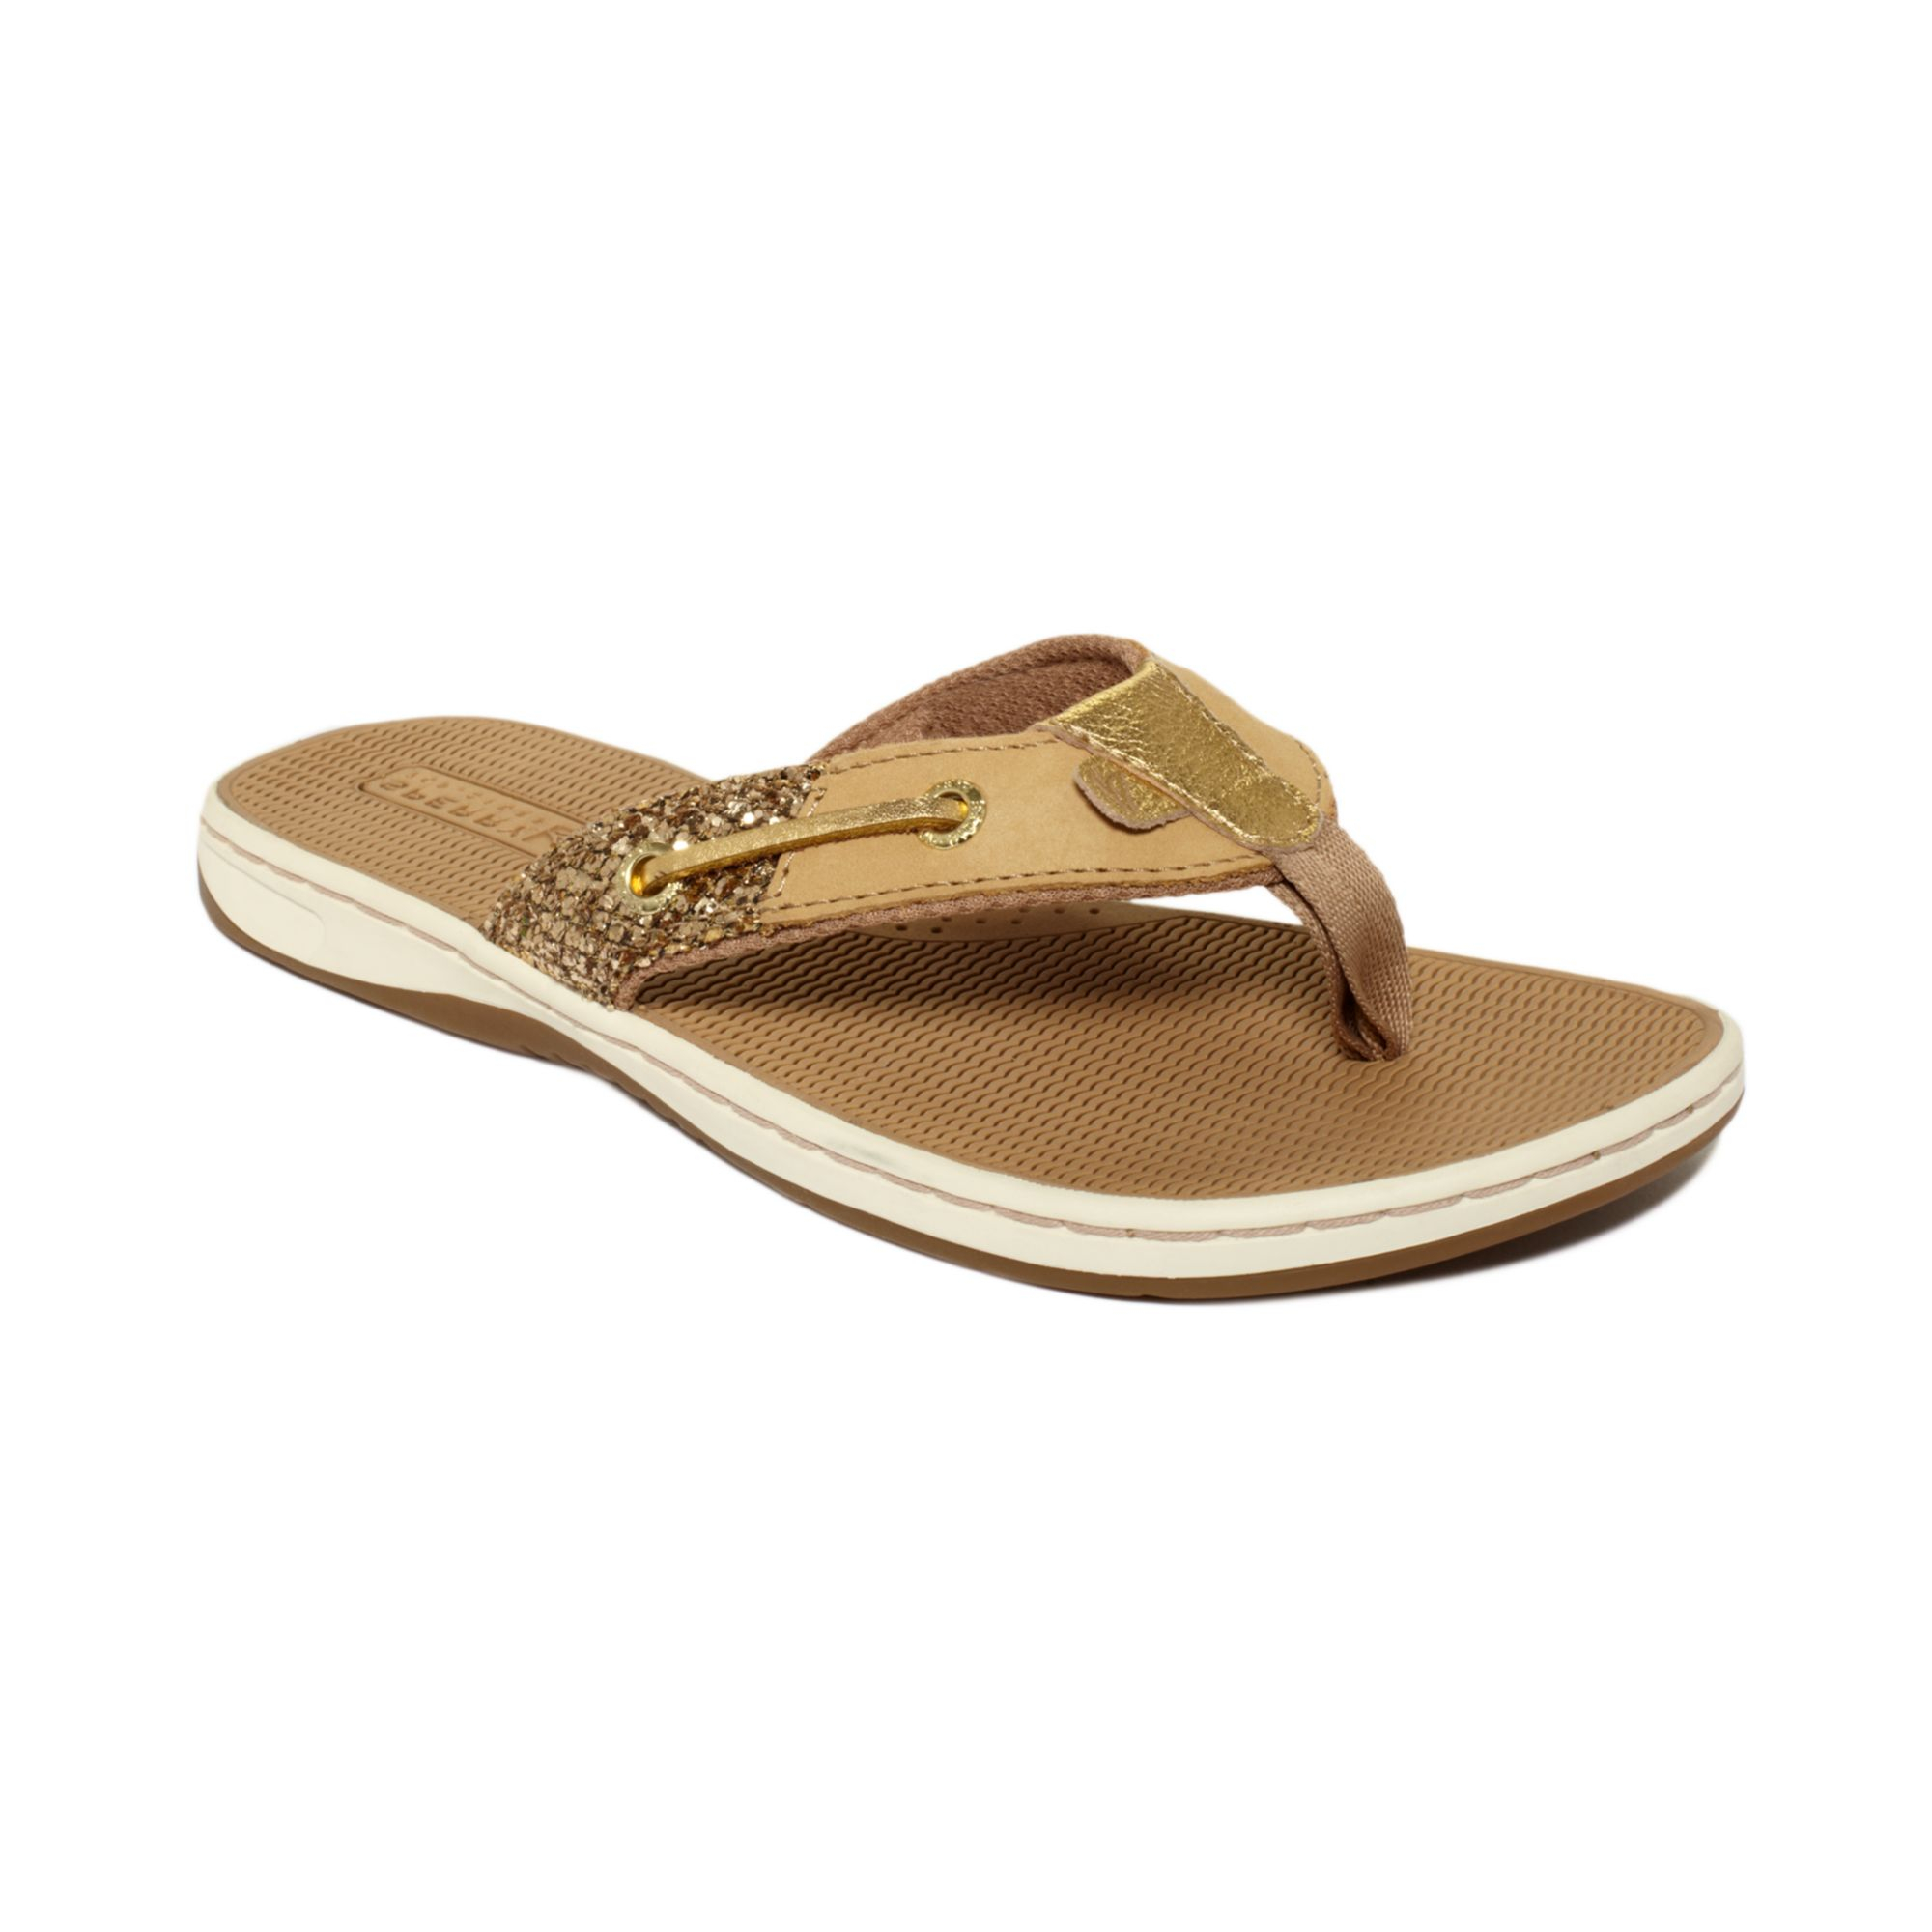 5bd103c7e51d Lyst - Sperry Top-Sider Seafish Thong Sandals in Brown